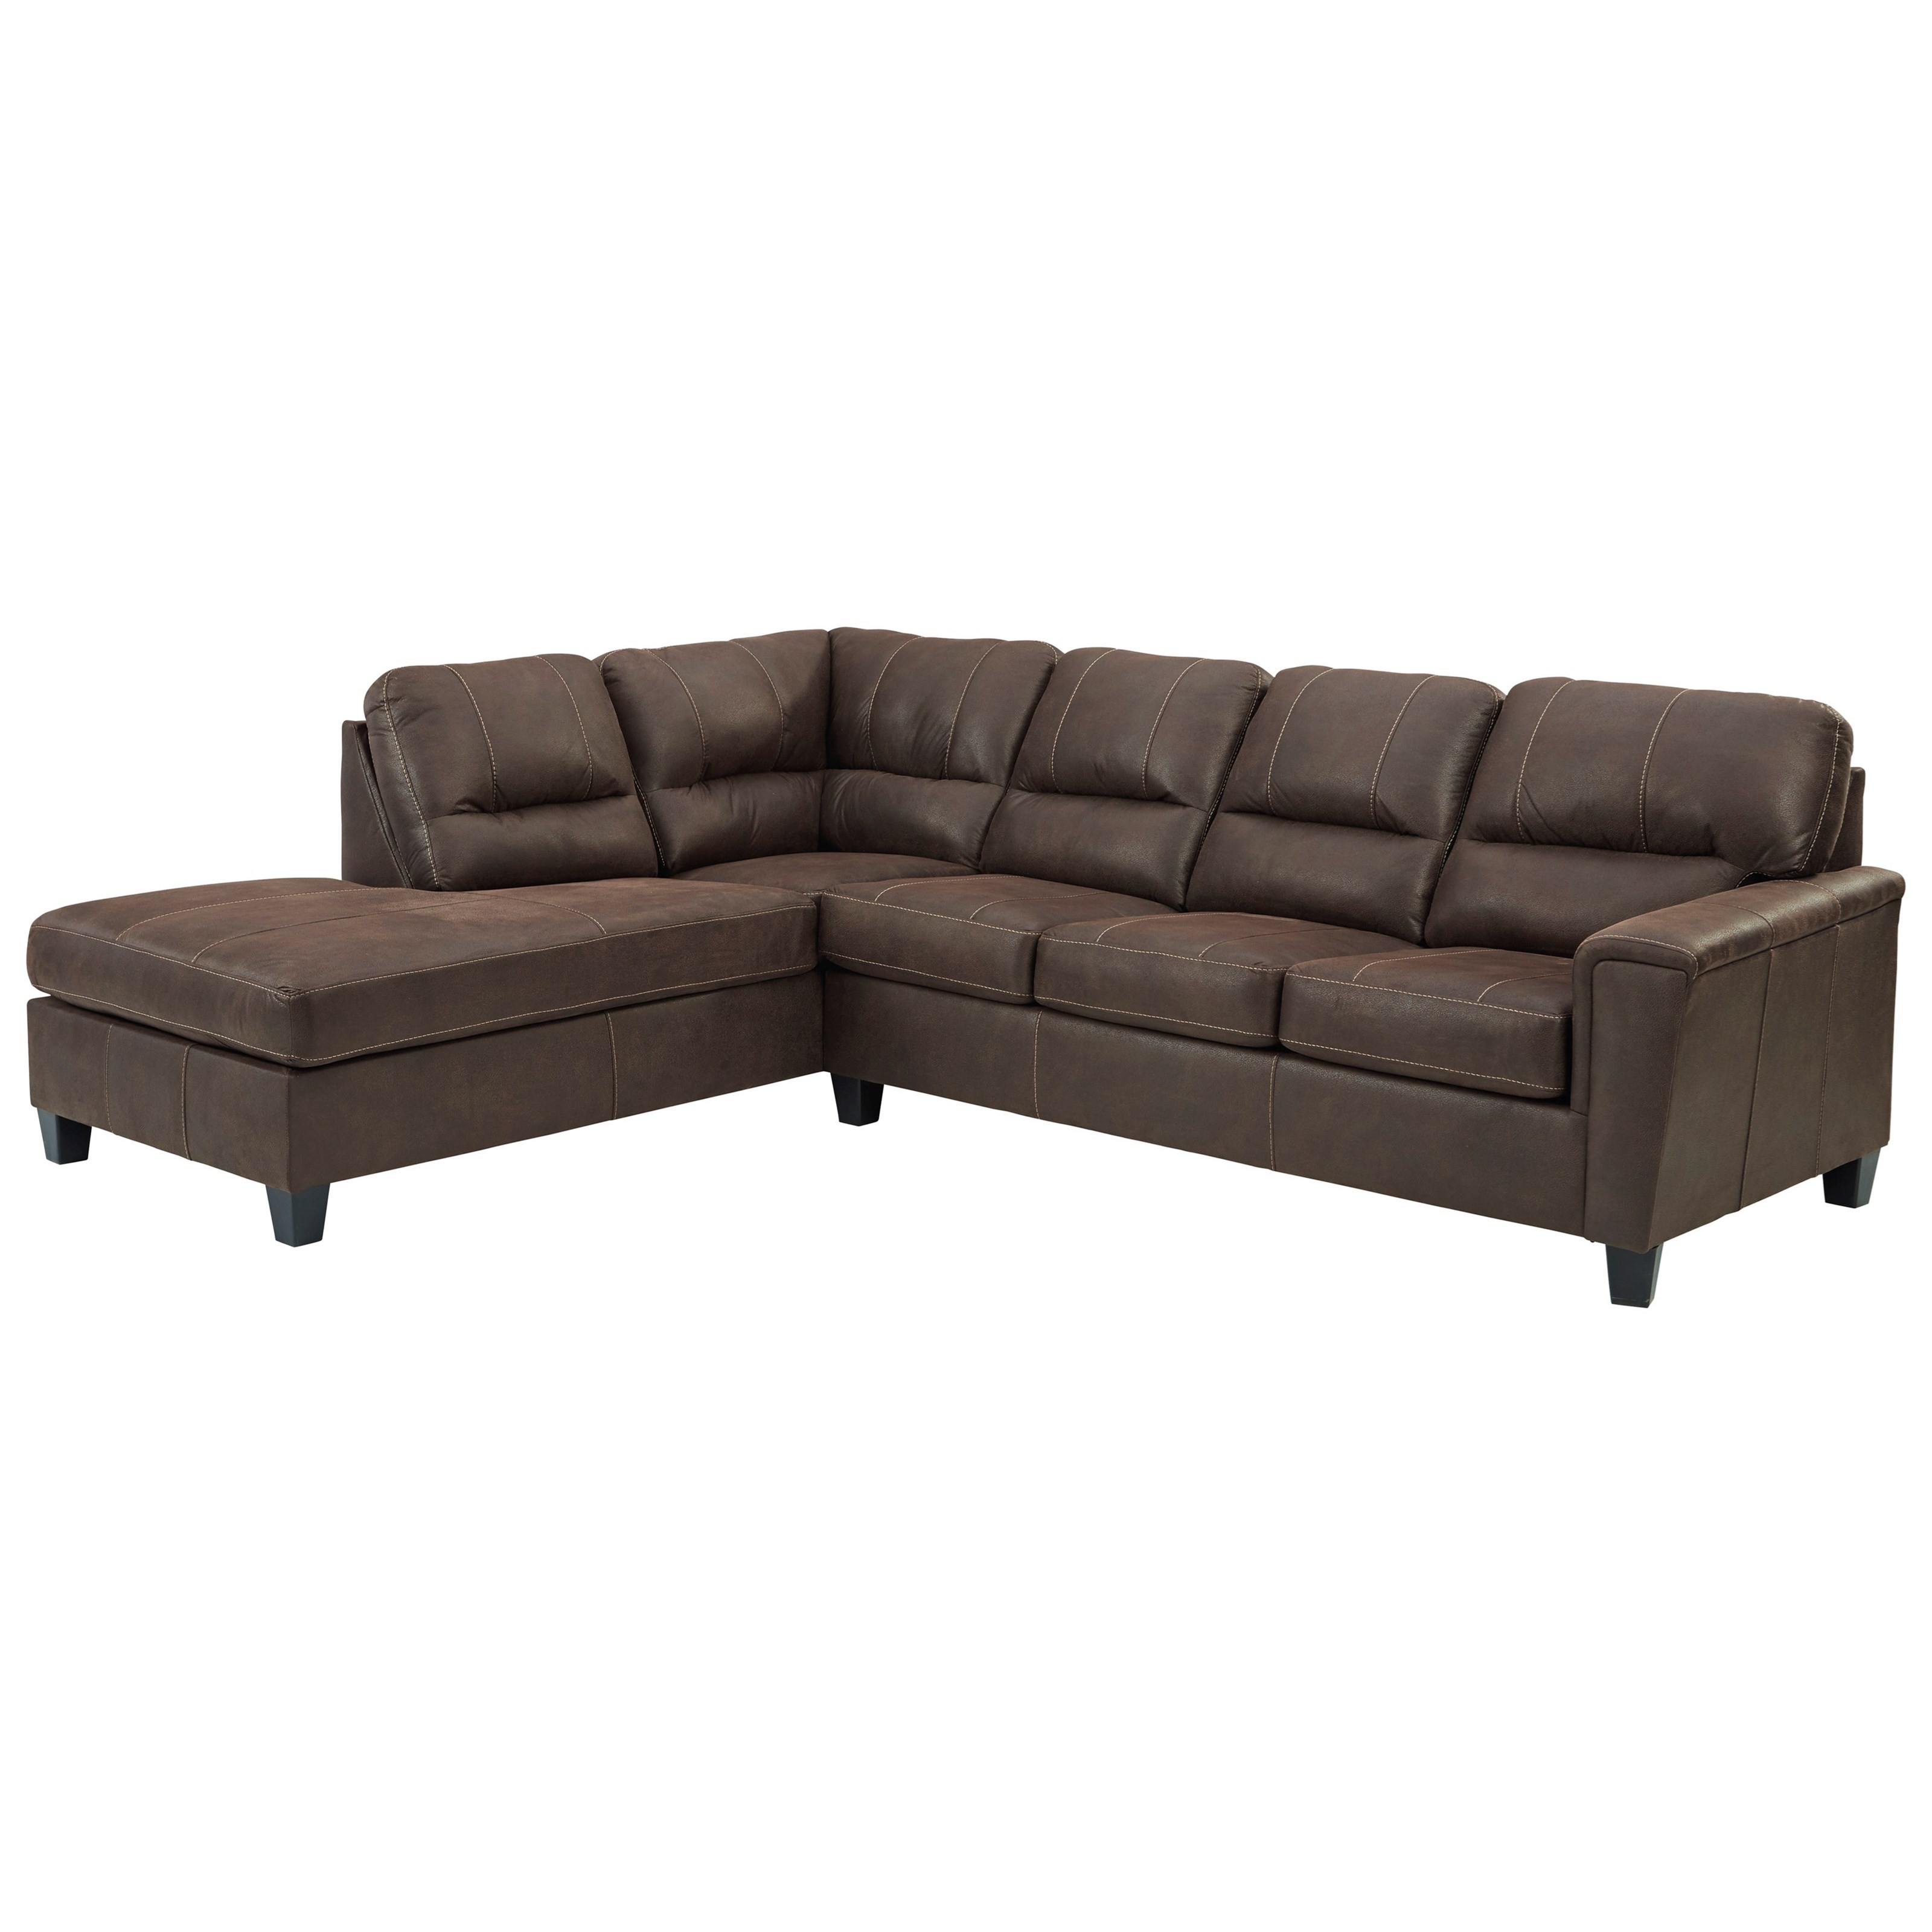 2-Piece Sectional w/ Left Chaise & Sleeper